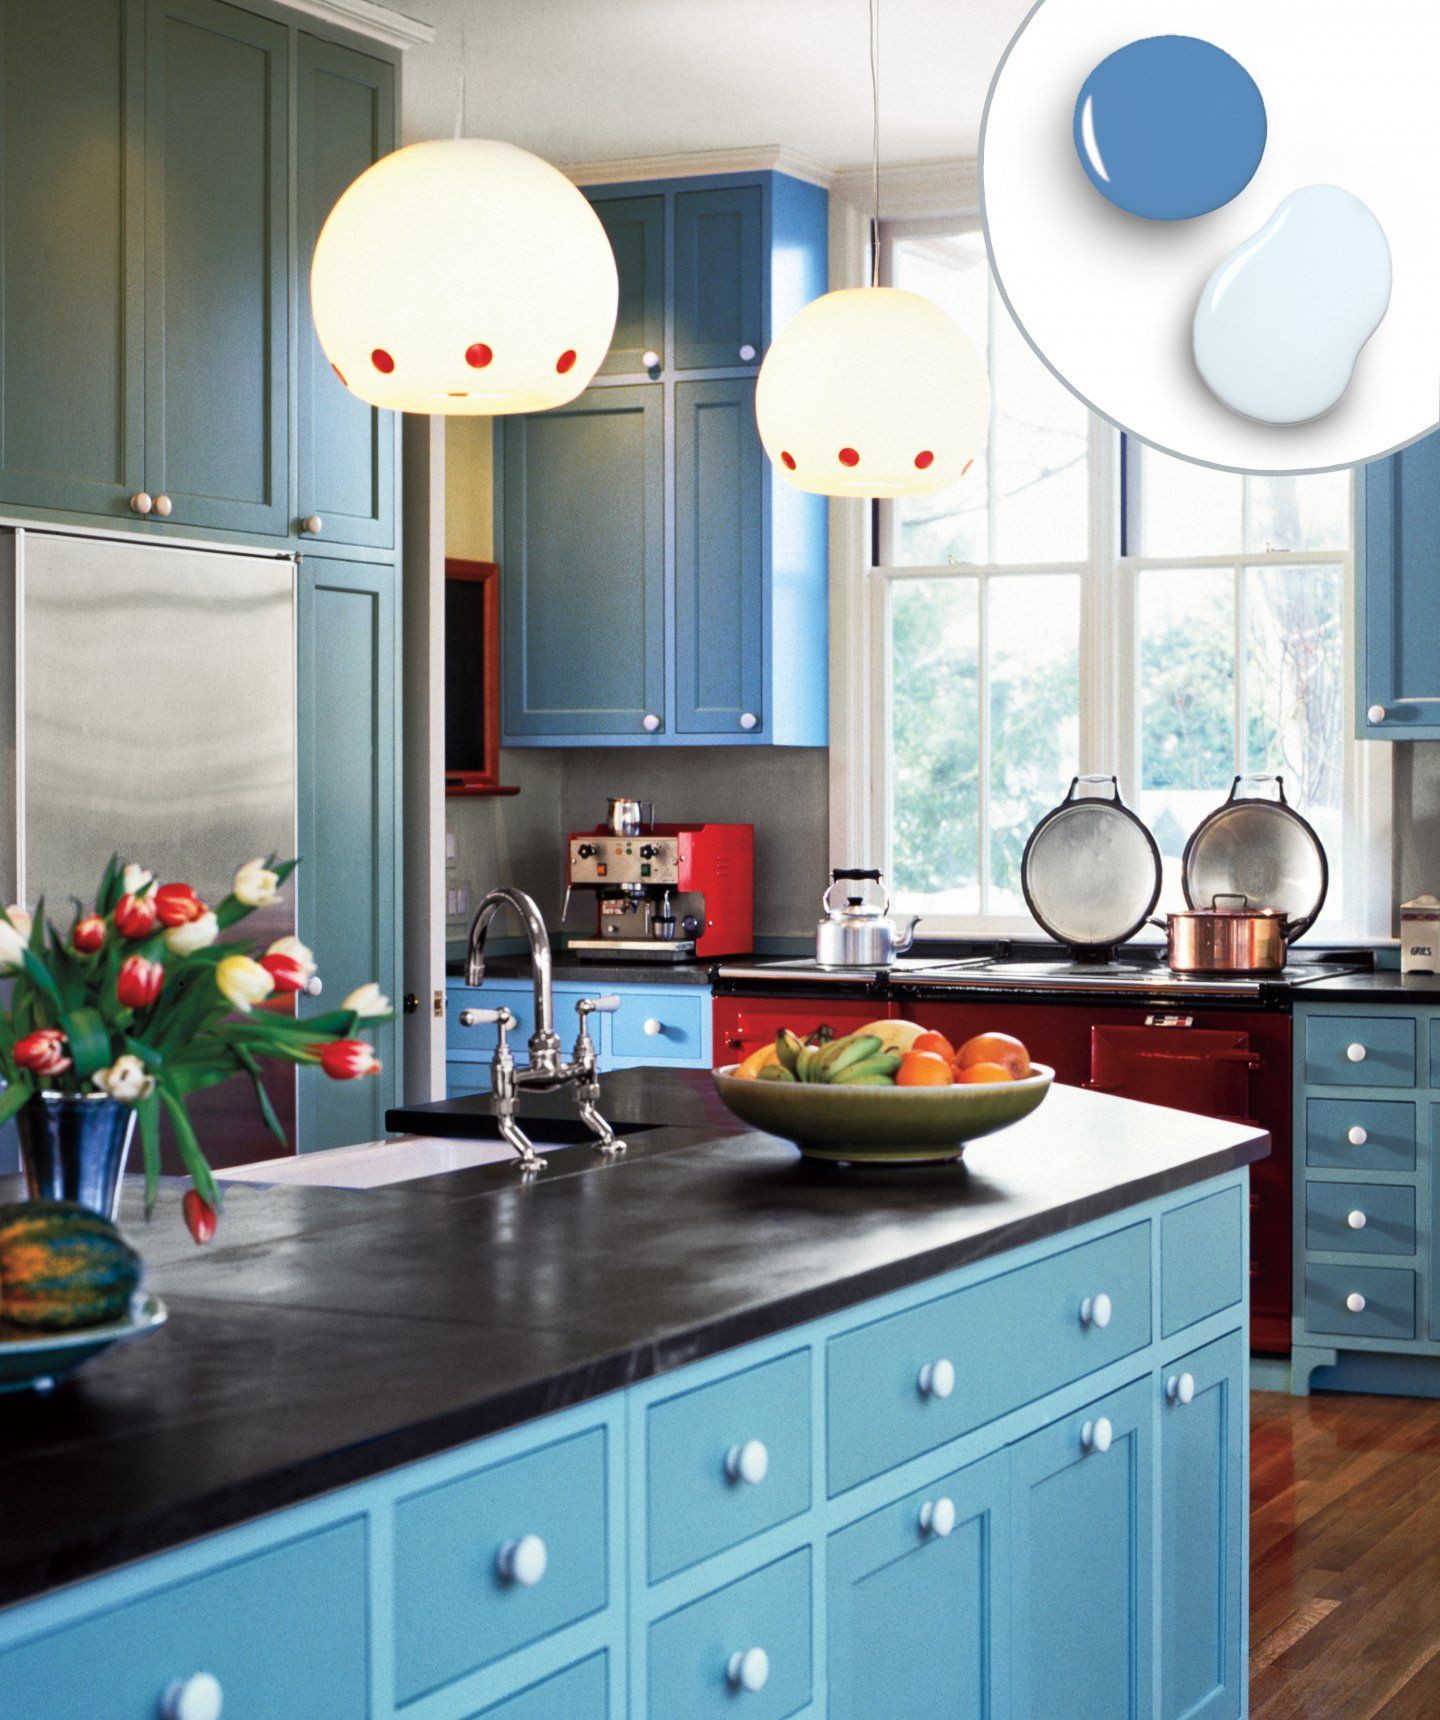 12 Kitchen Cabinet Color Combos That Really Cook Turquoise Kitchen Cabinets Small Kitchen Decor Kitchen Cabinets Color Combination